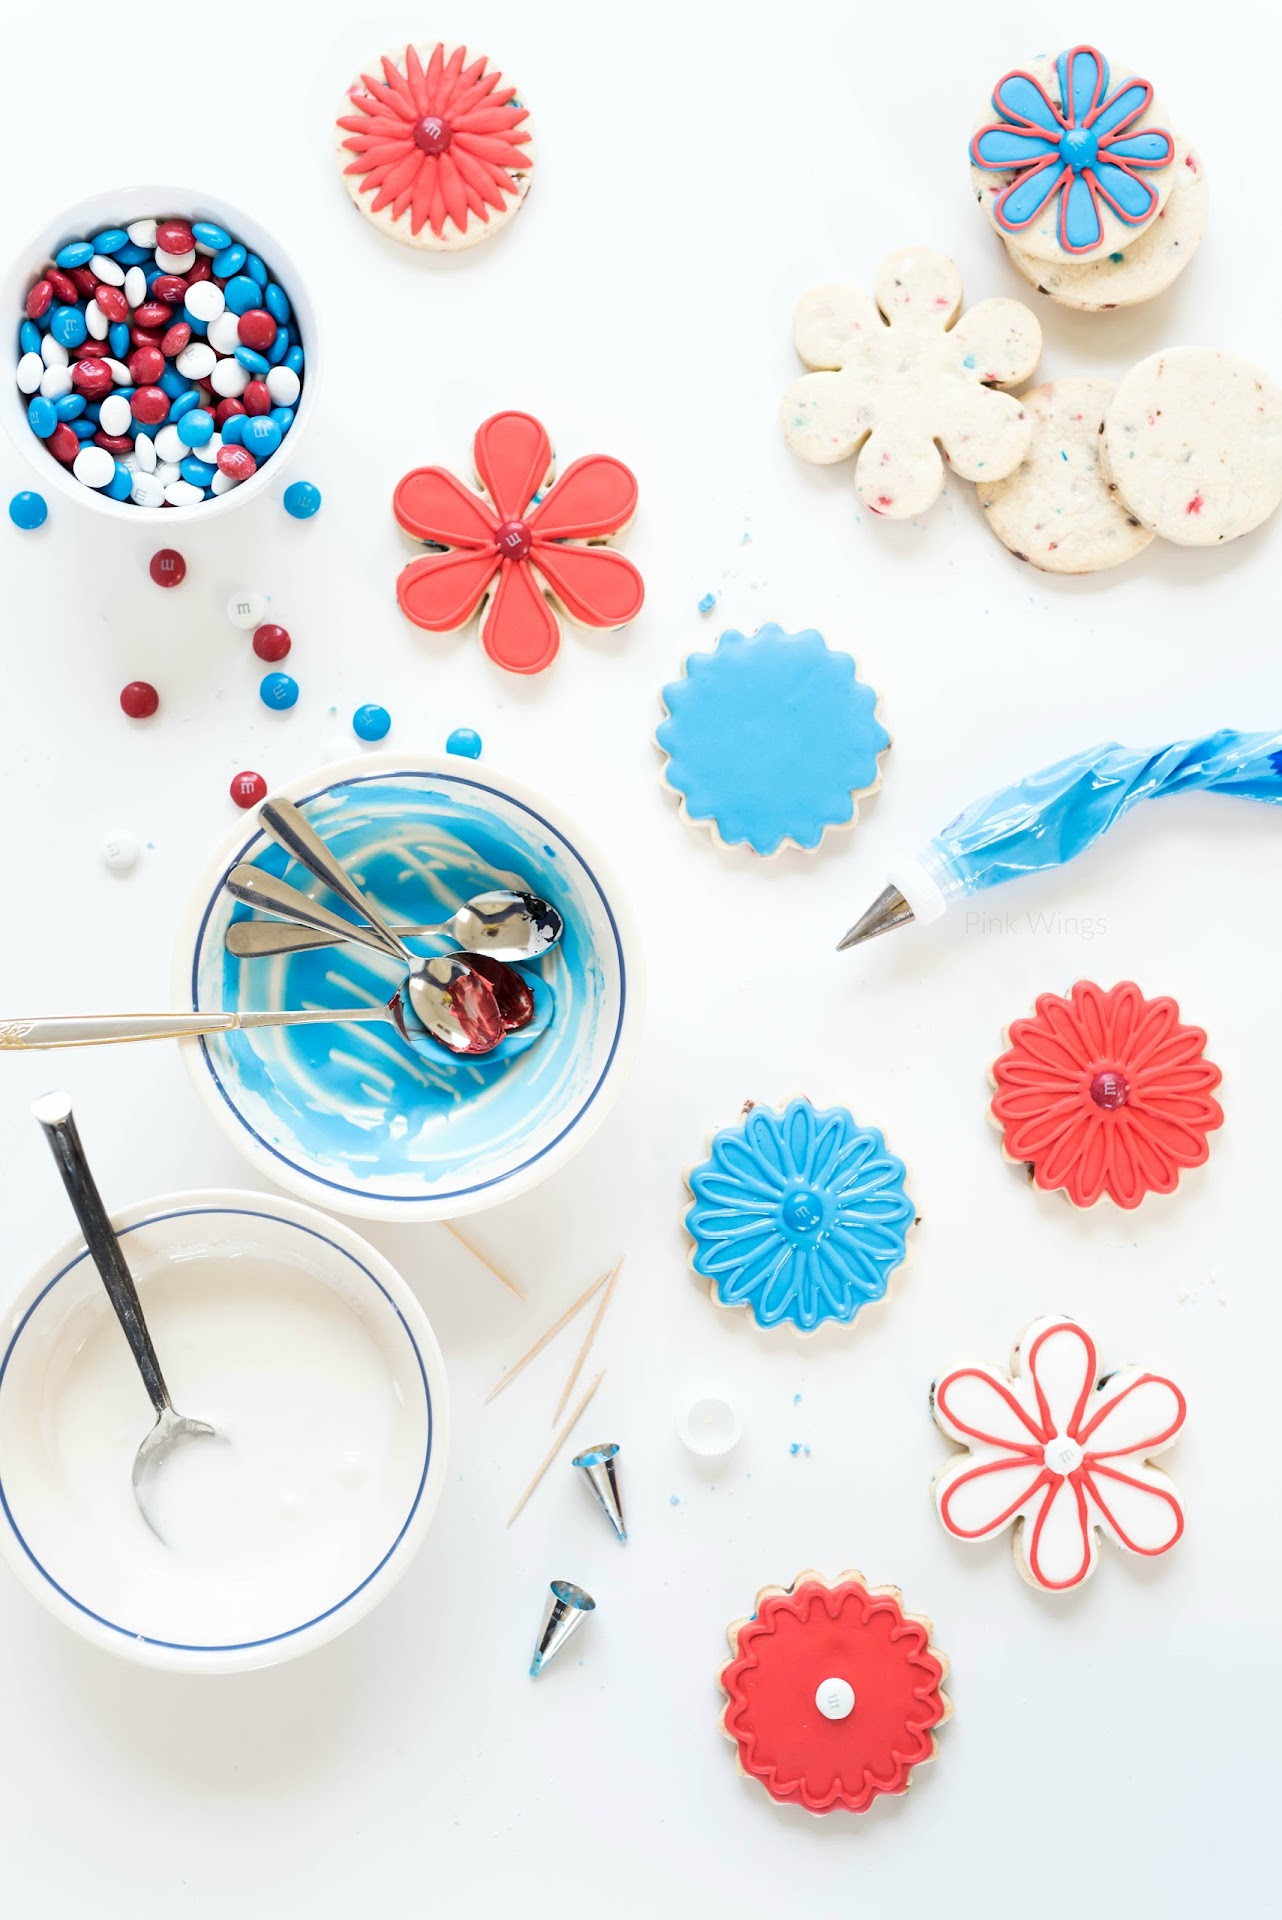 flower sugar cookies, best royal icing recipe, how to decorate sugar cookies, what pastry tips to use for royal icing, tips for decorating sugar cookies, patriotic recipes, ingredients food photography, food art